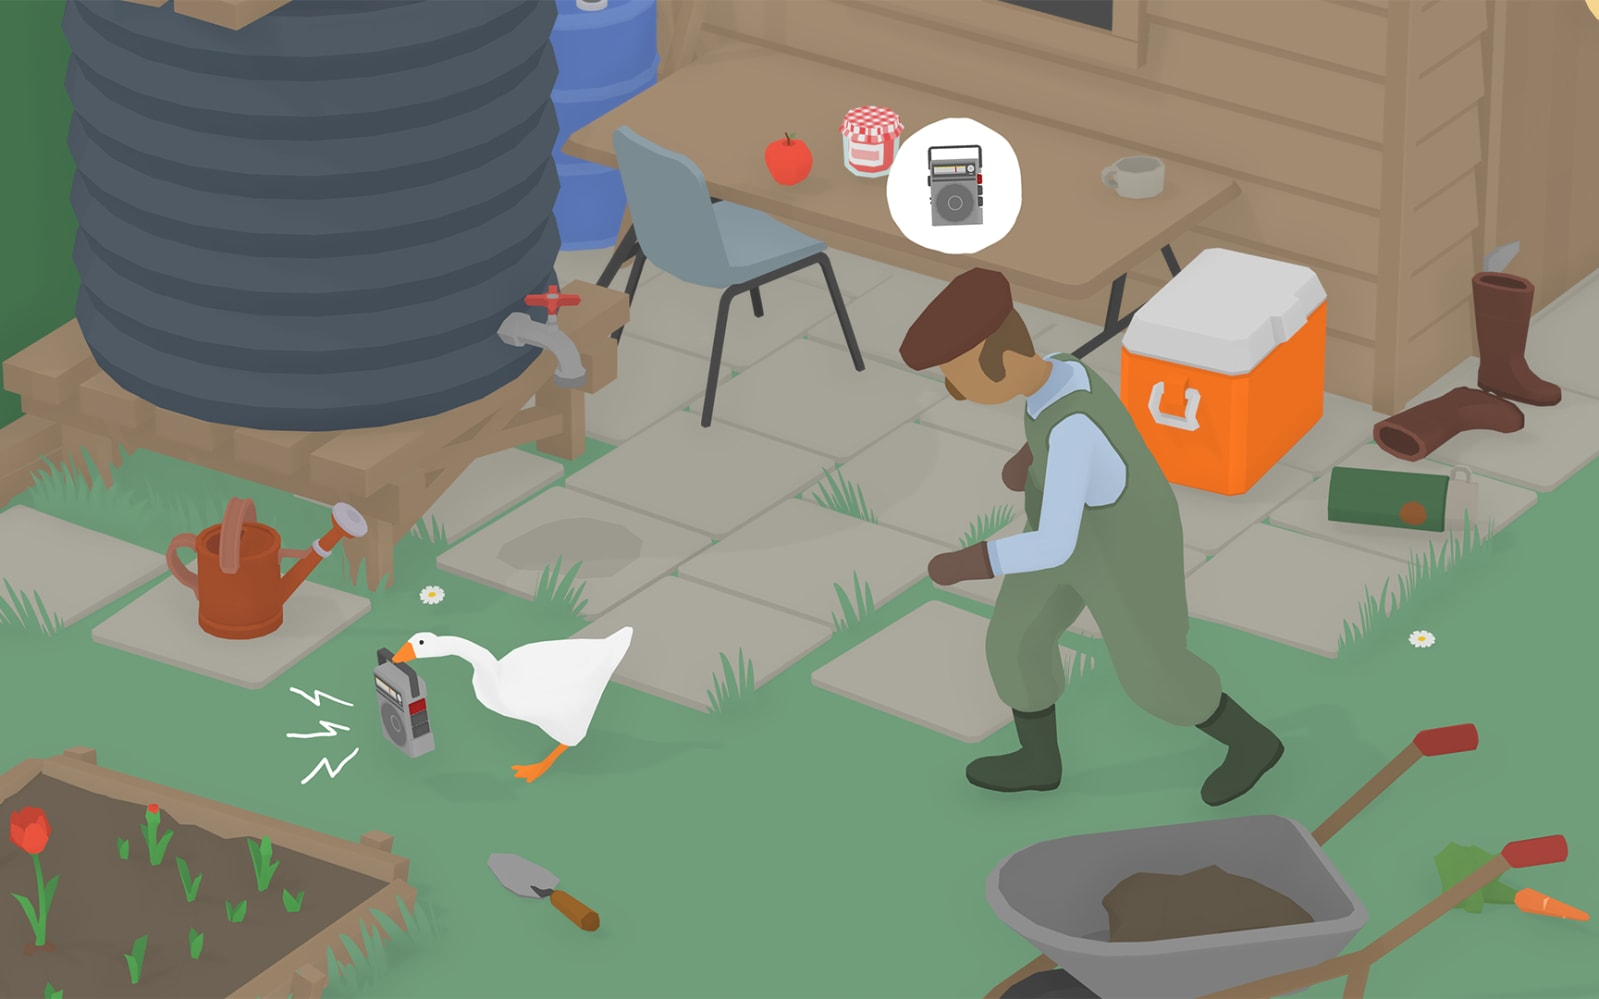 'Untitled Goose Game' arrives today on Mac, PC and Switch